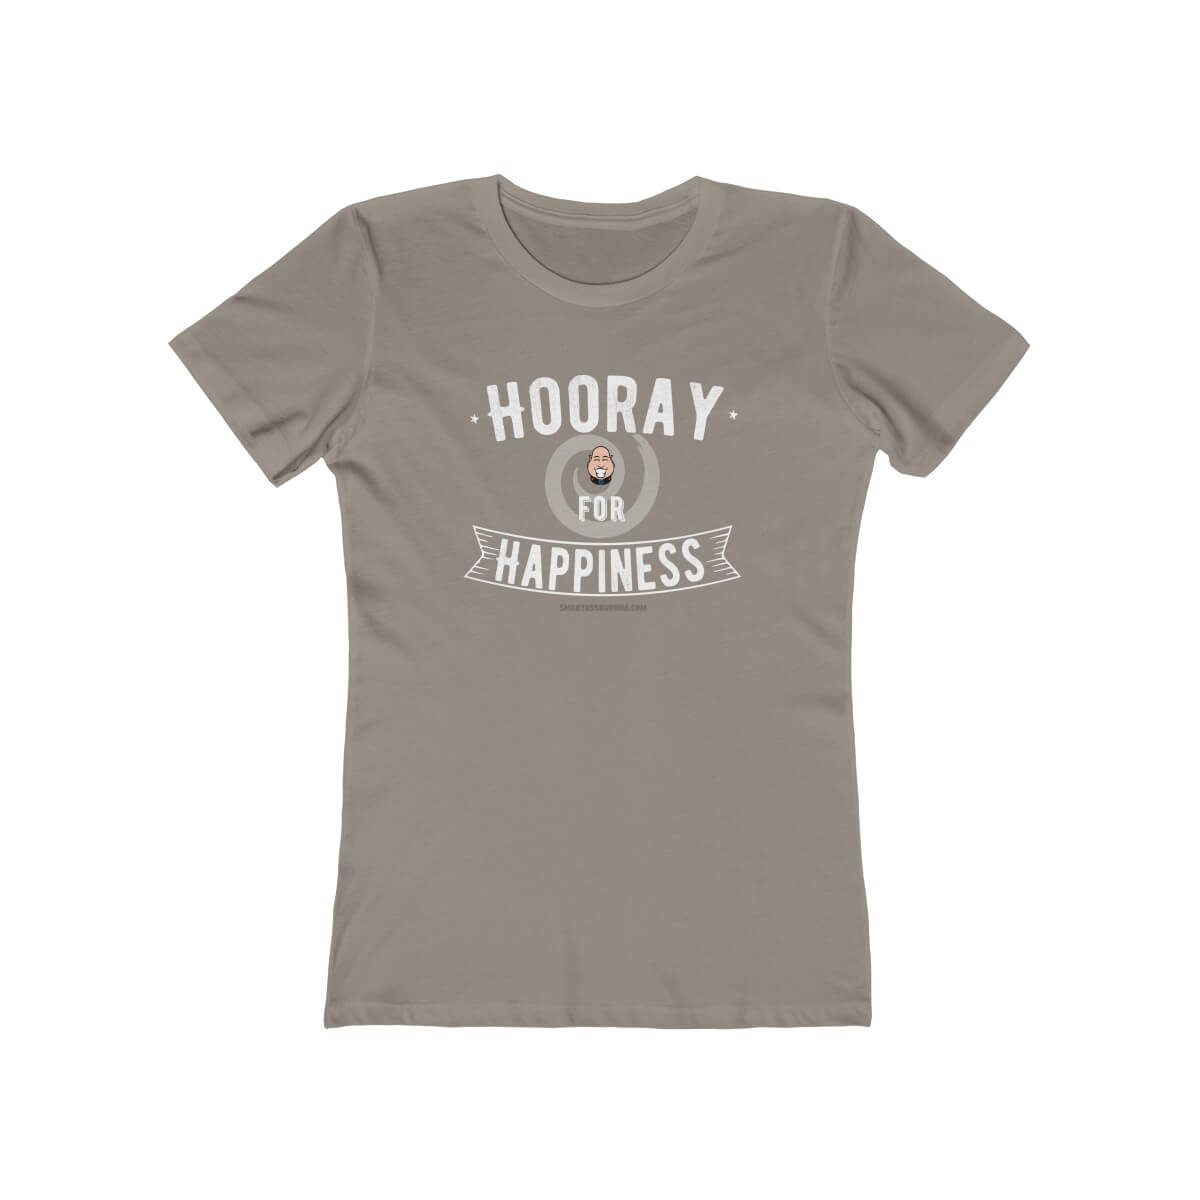 hooray-for-happiness-gratitude-tshirt-with-sayings-for-women-cool-gift-unique-grey